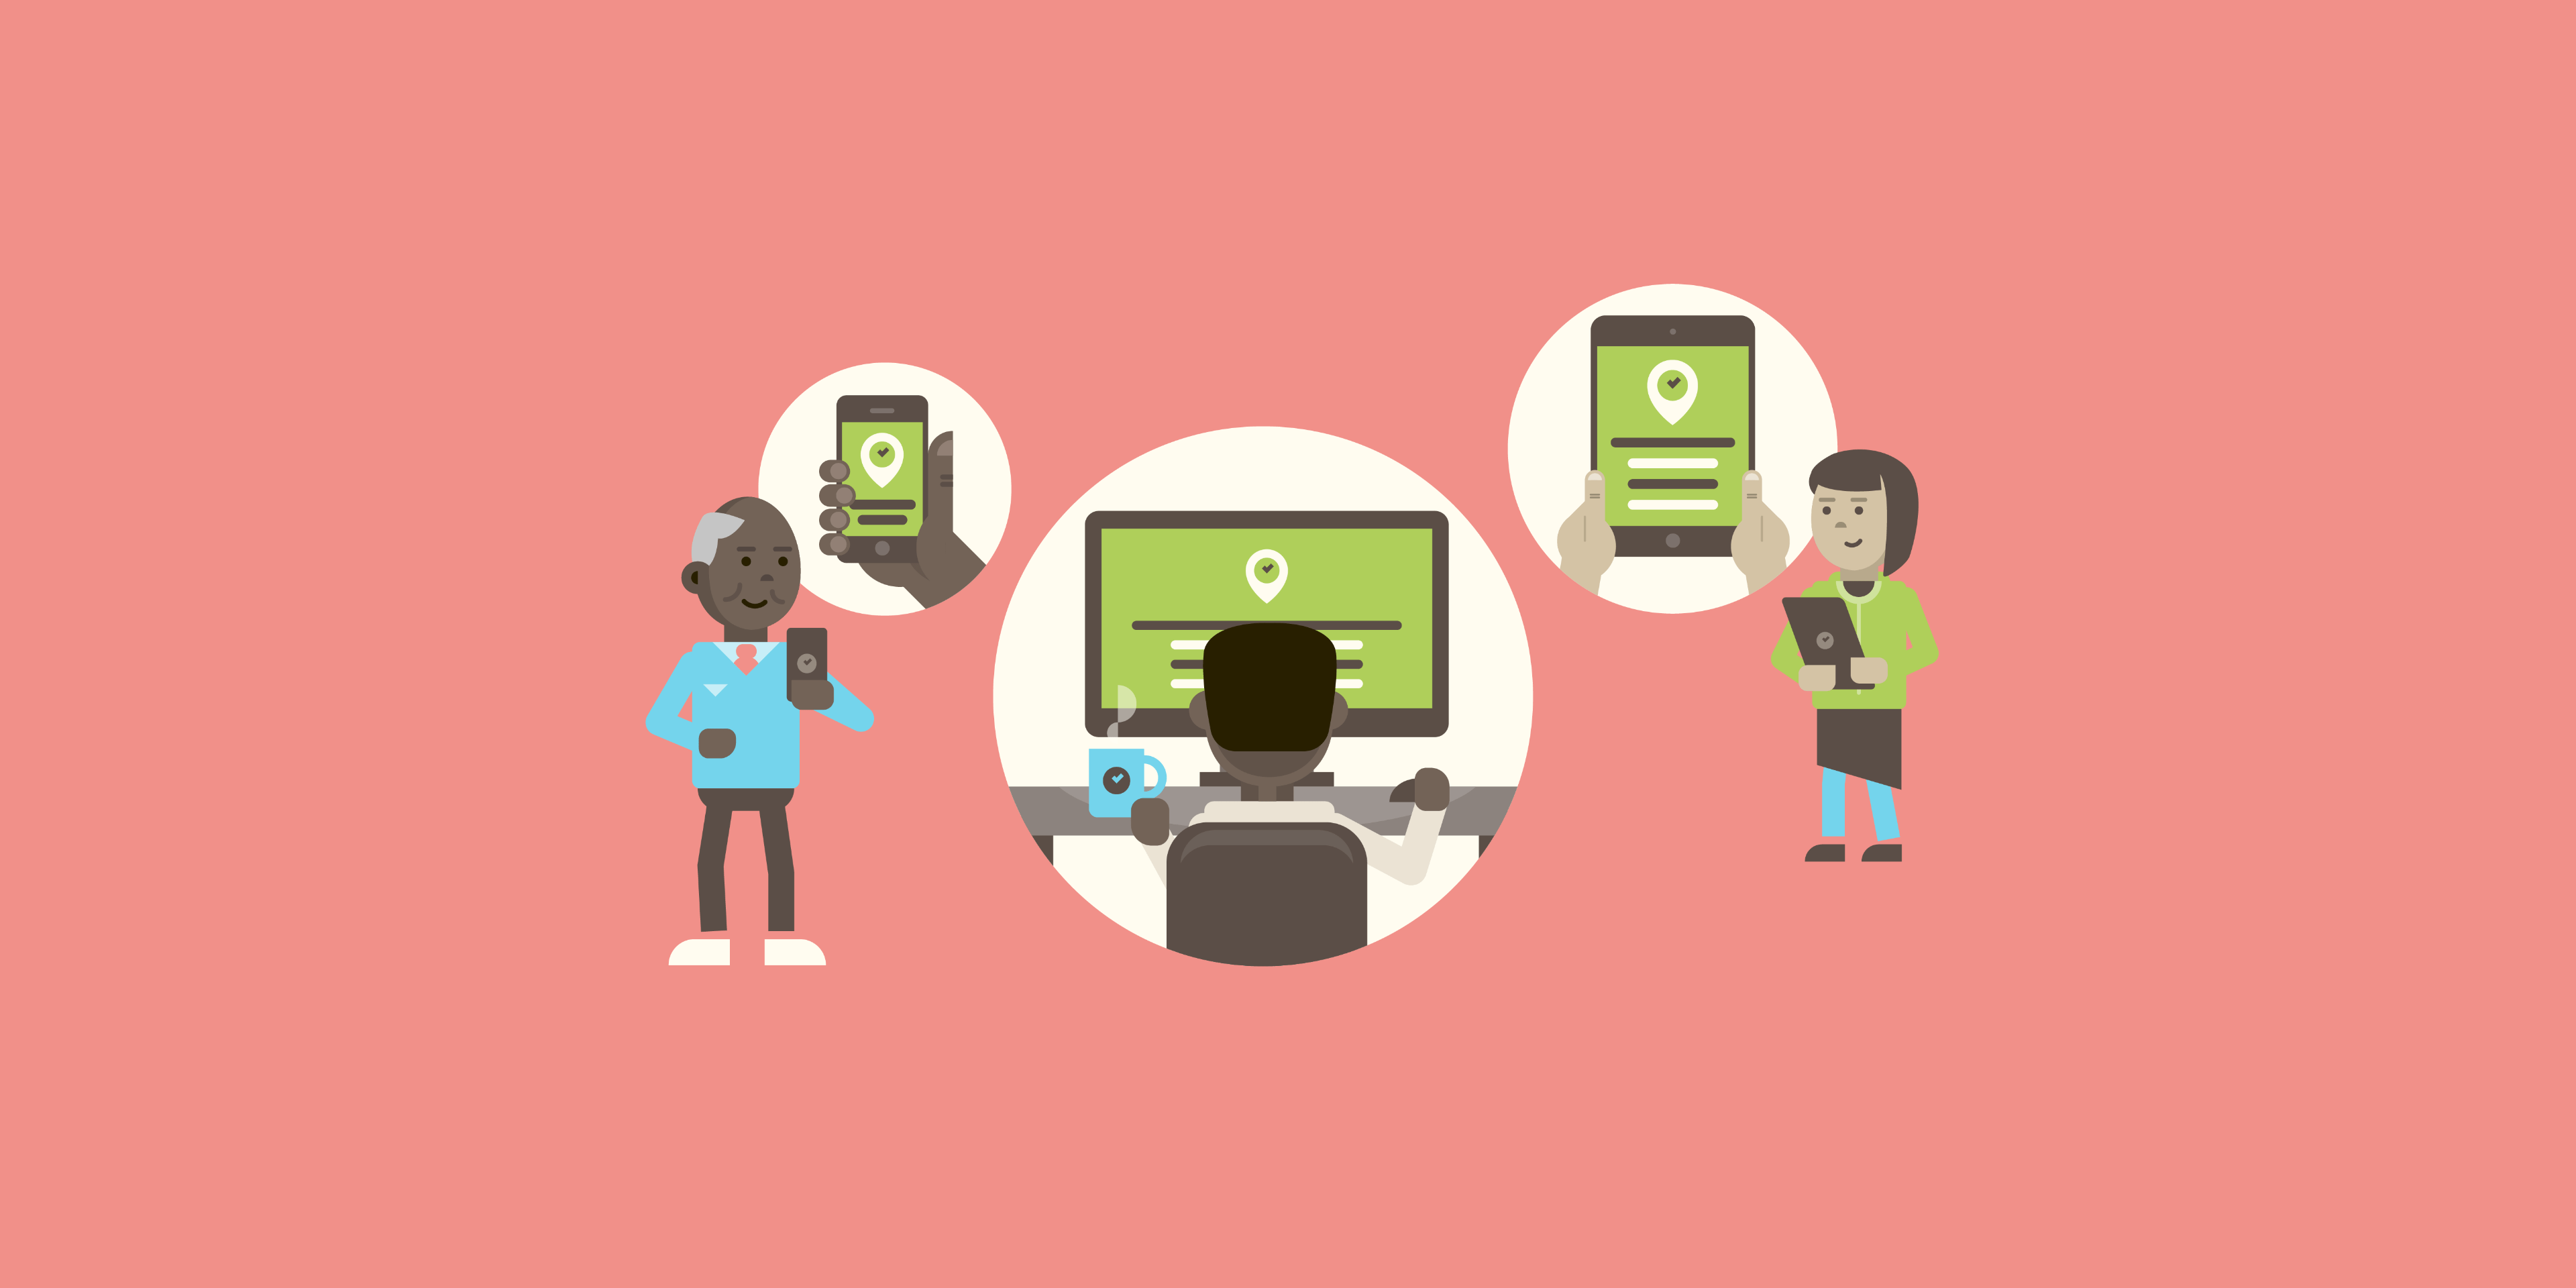 An illustration showing three individuals accessing or maintaining PlaceCal on their mobile, desktop computer or tablet – the illustration is in a very simple flat graphic vector style against soft pink.